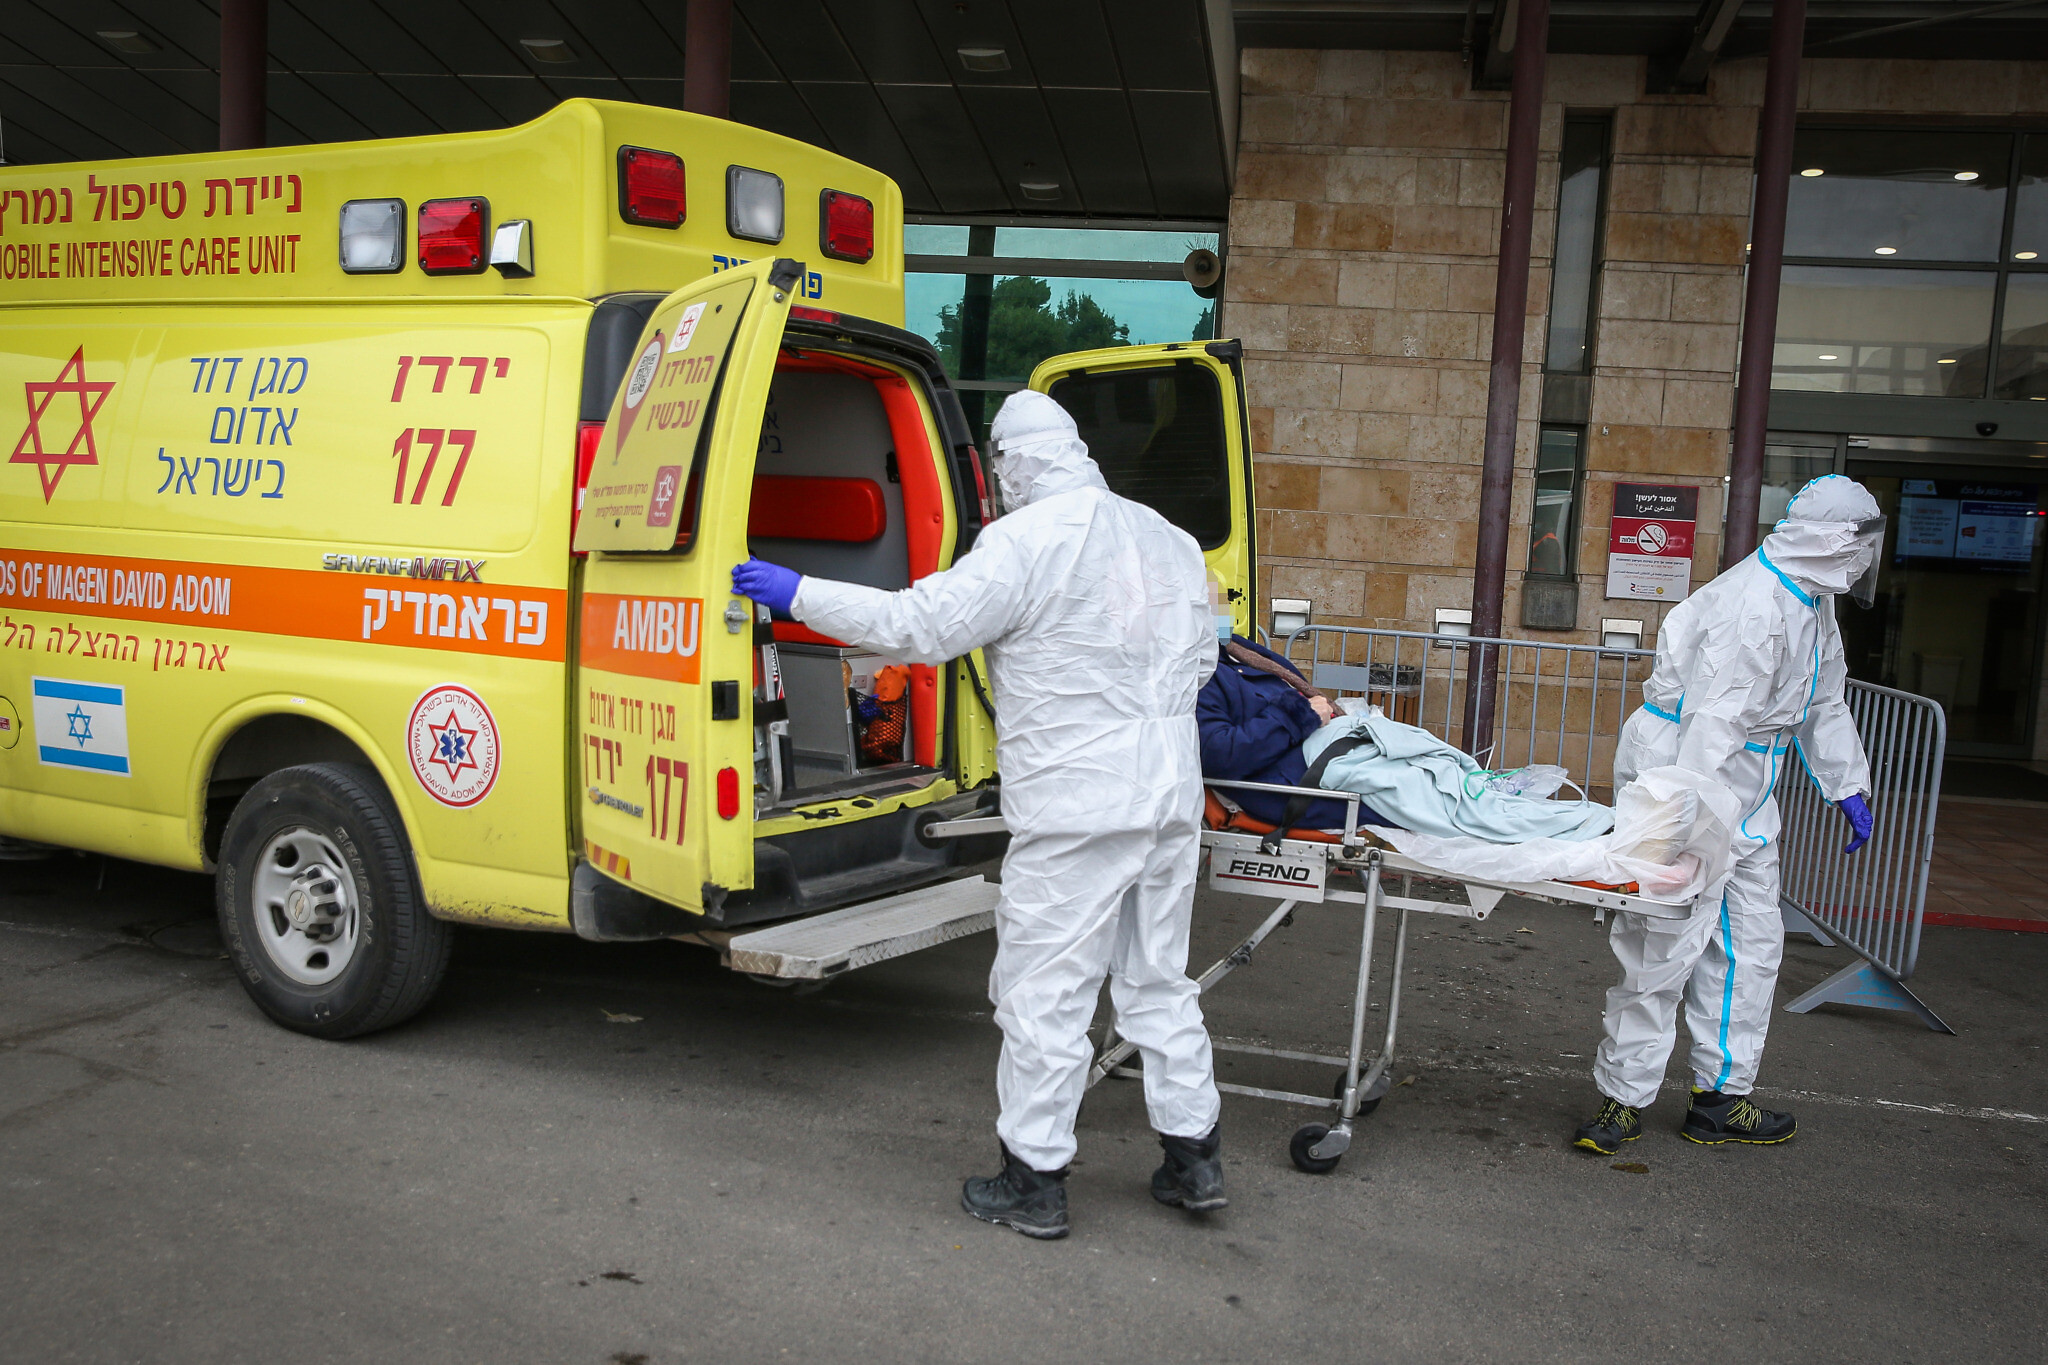 Oecd Israel Worst In Daily Virus Cases Among Best For Low Fatalities The Times Of Israel